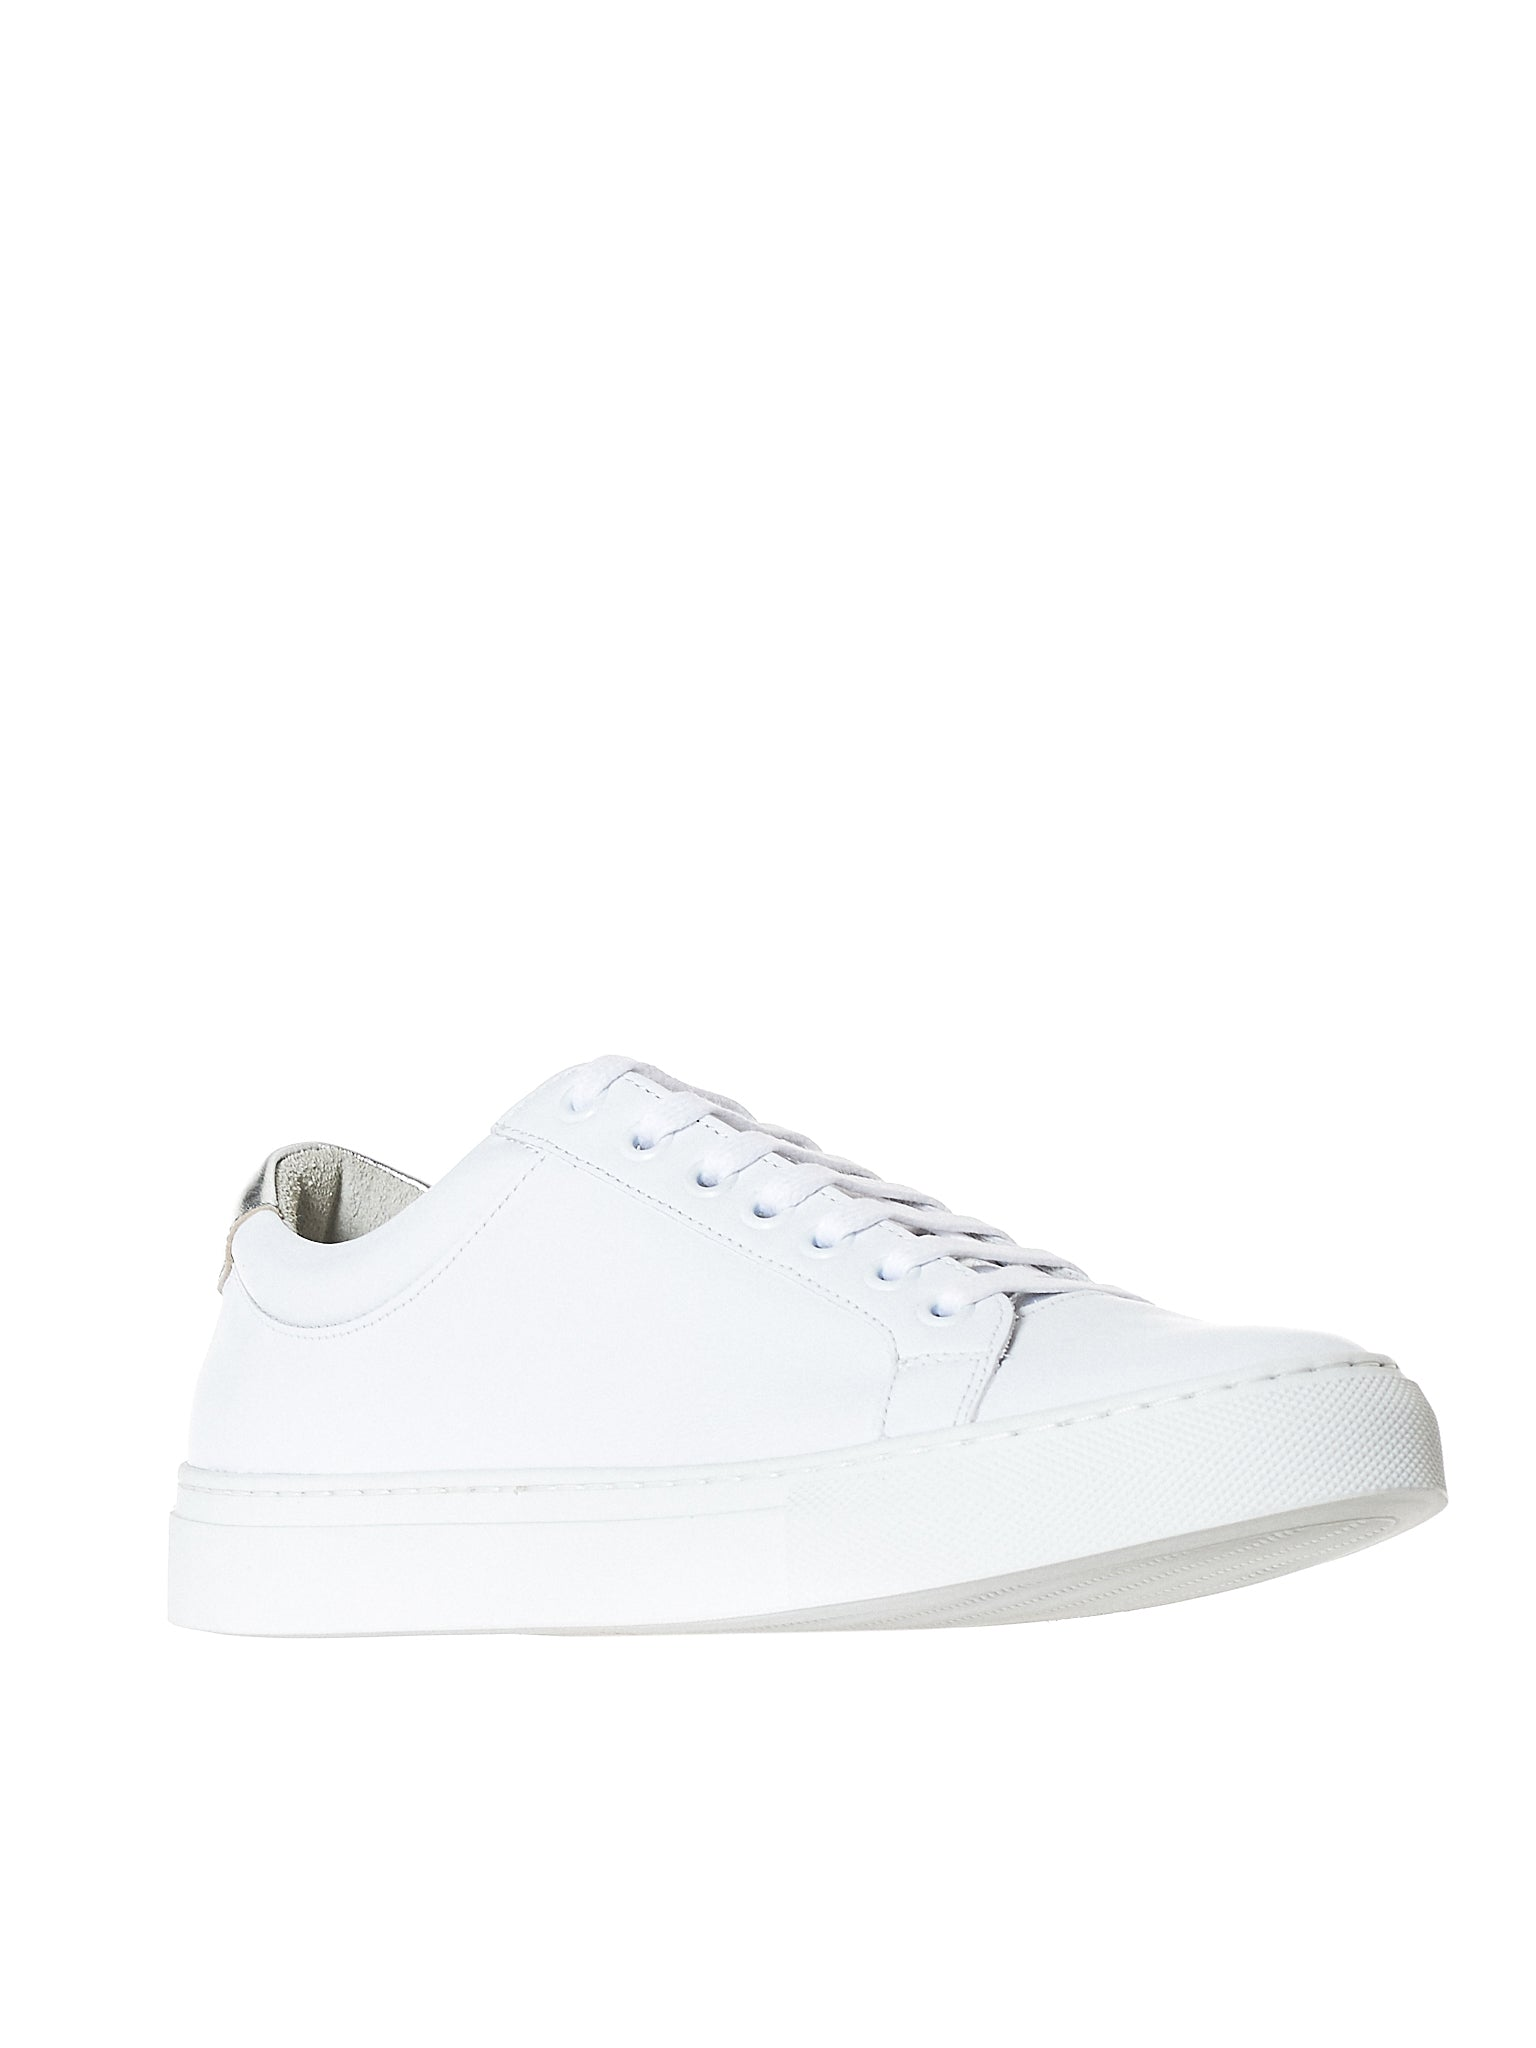 Courreges white sneaker - H.Lorenzo Side 2